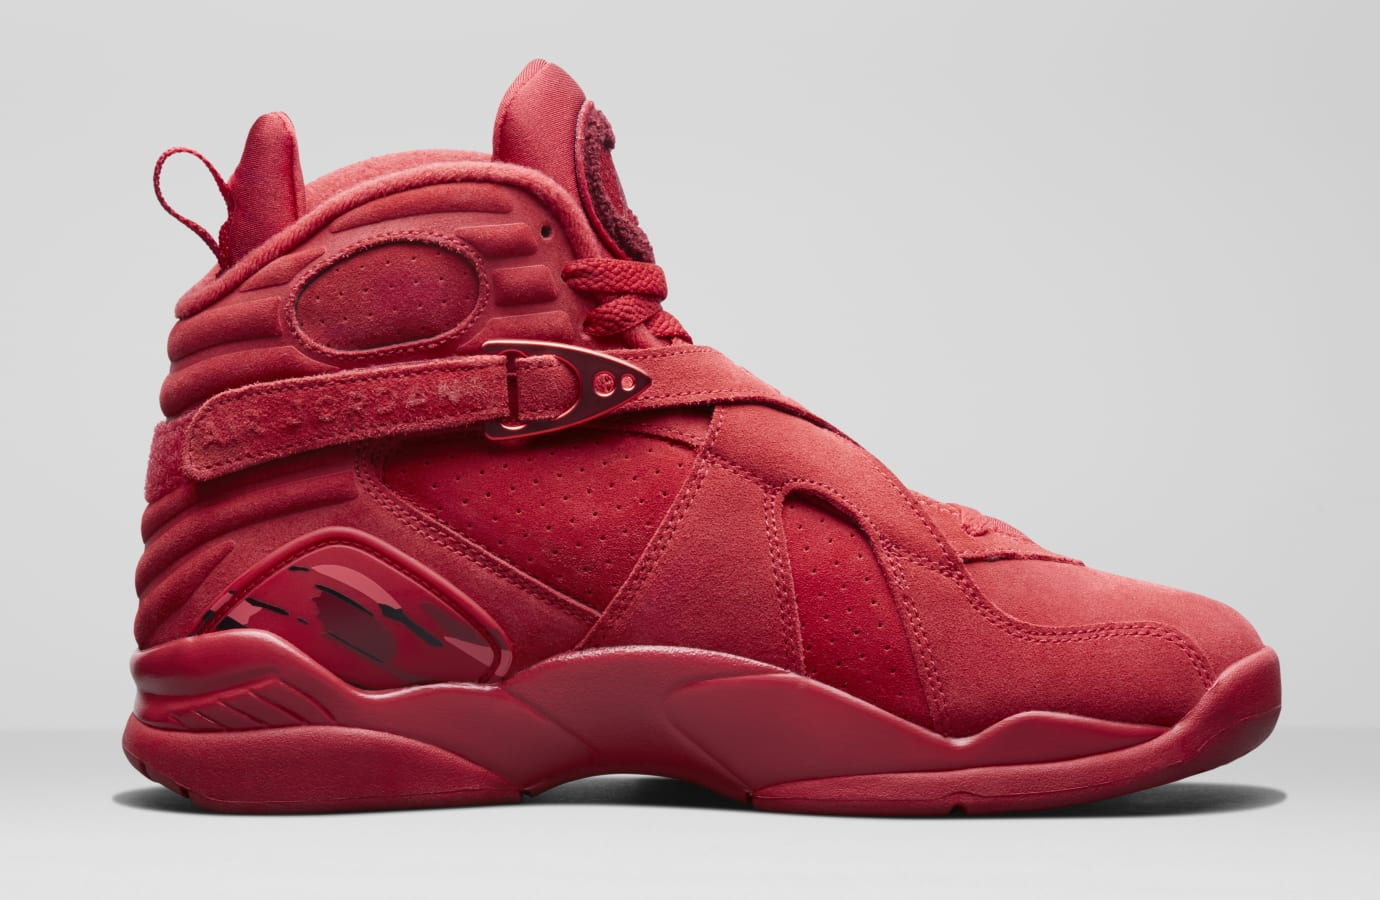 3ee73a01fe0677 WMNS Air Jordan 8  Valentine s Day  Gym Red Ember Glow-Team Red ...